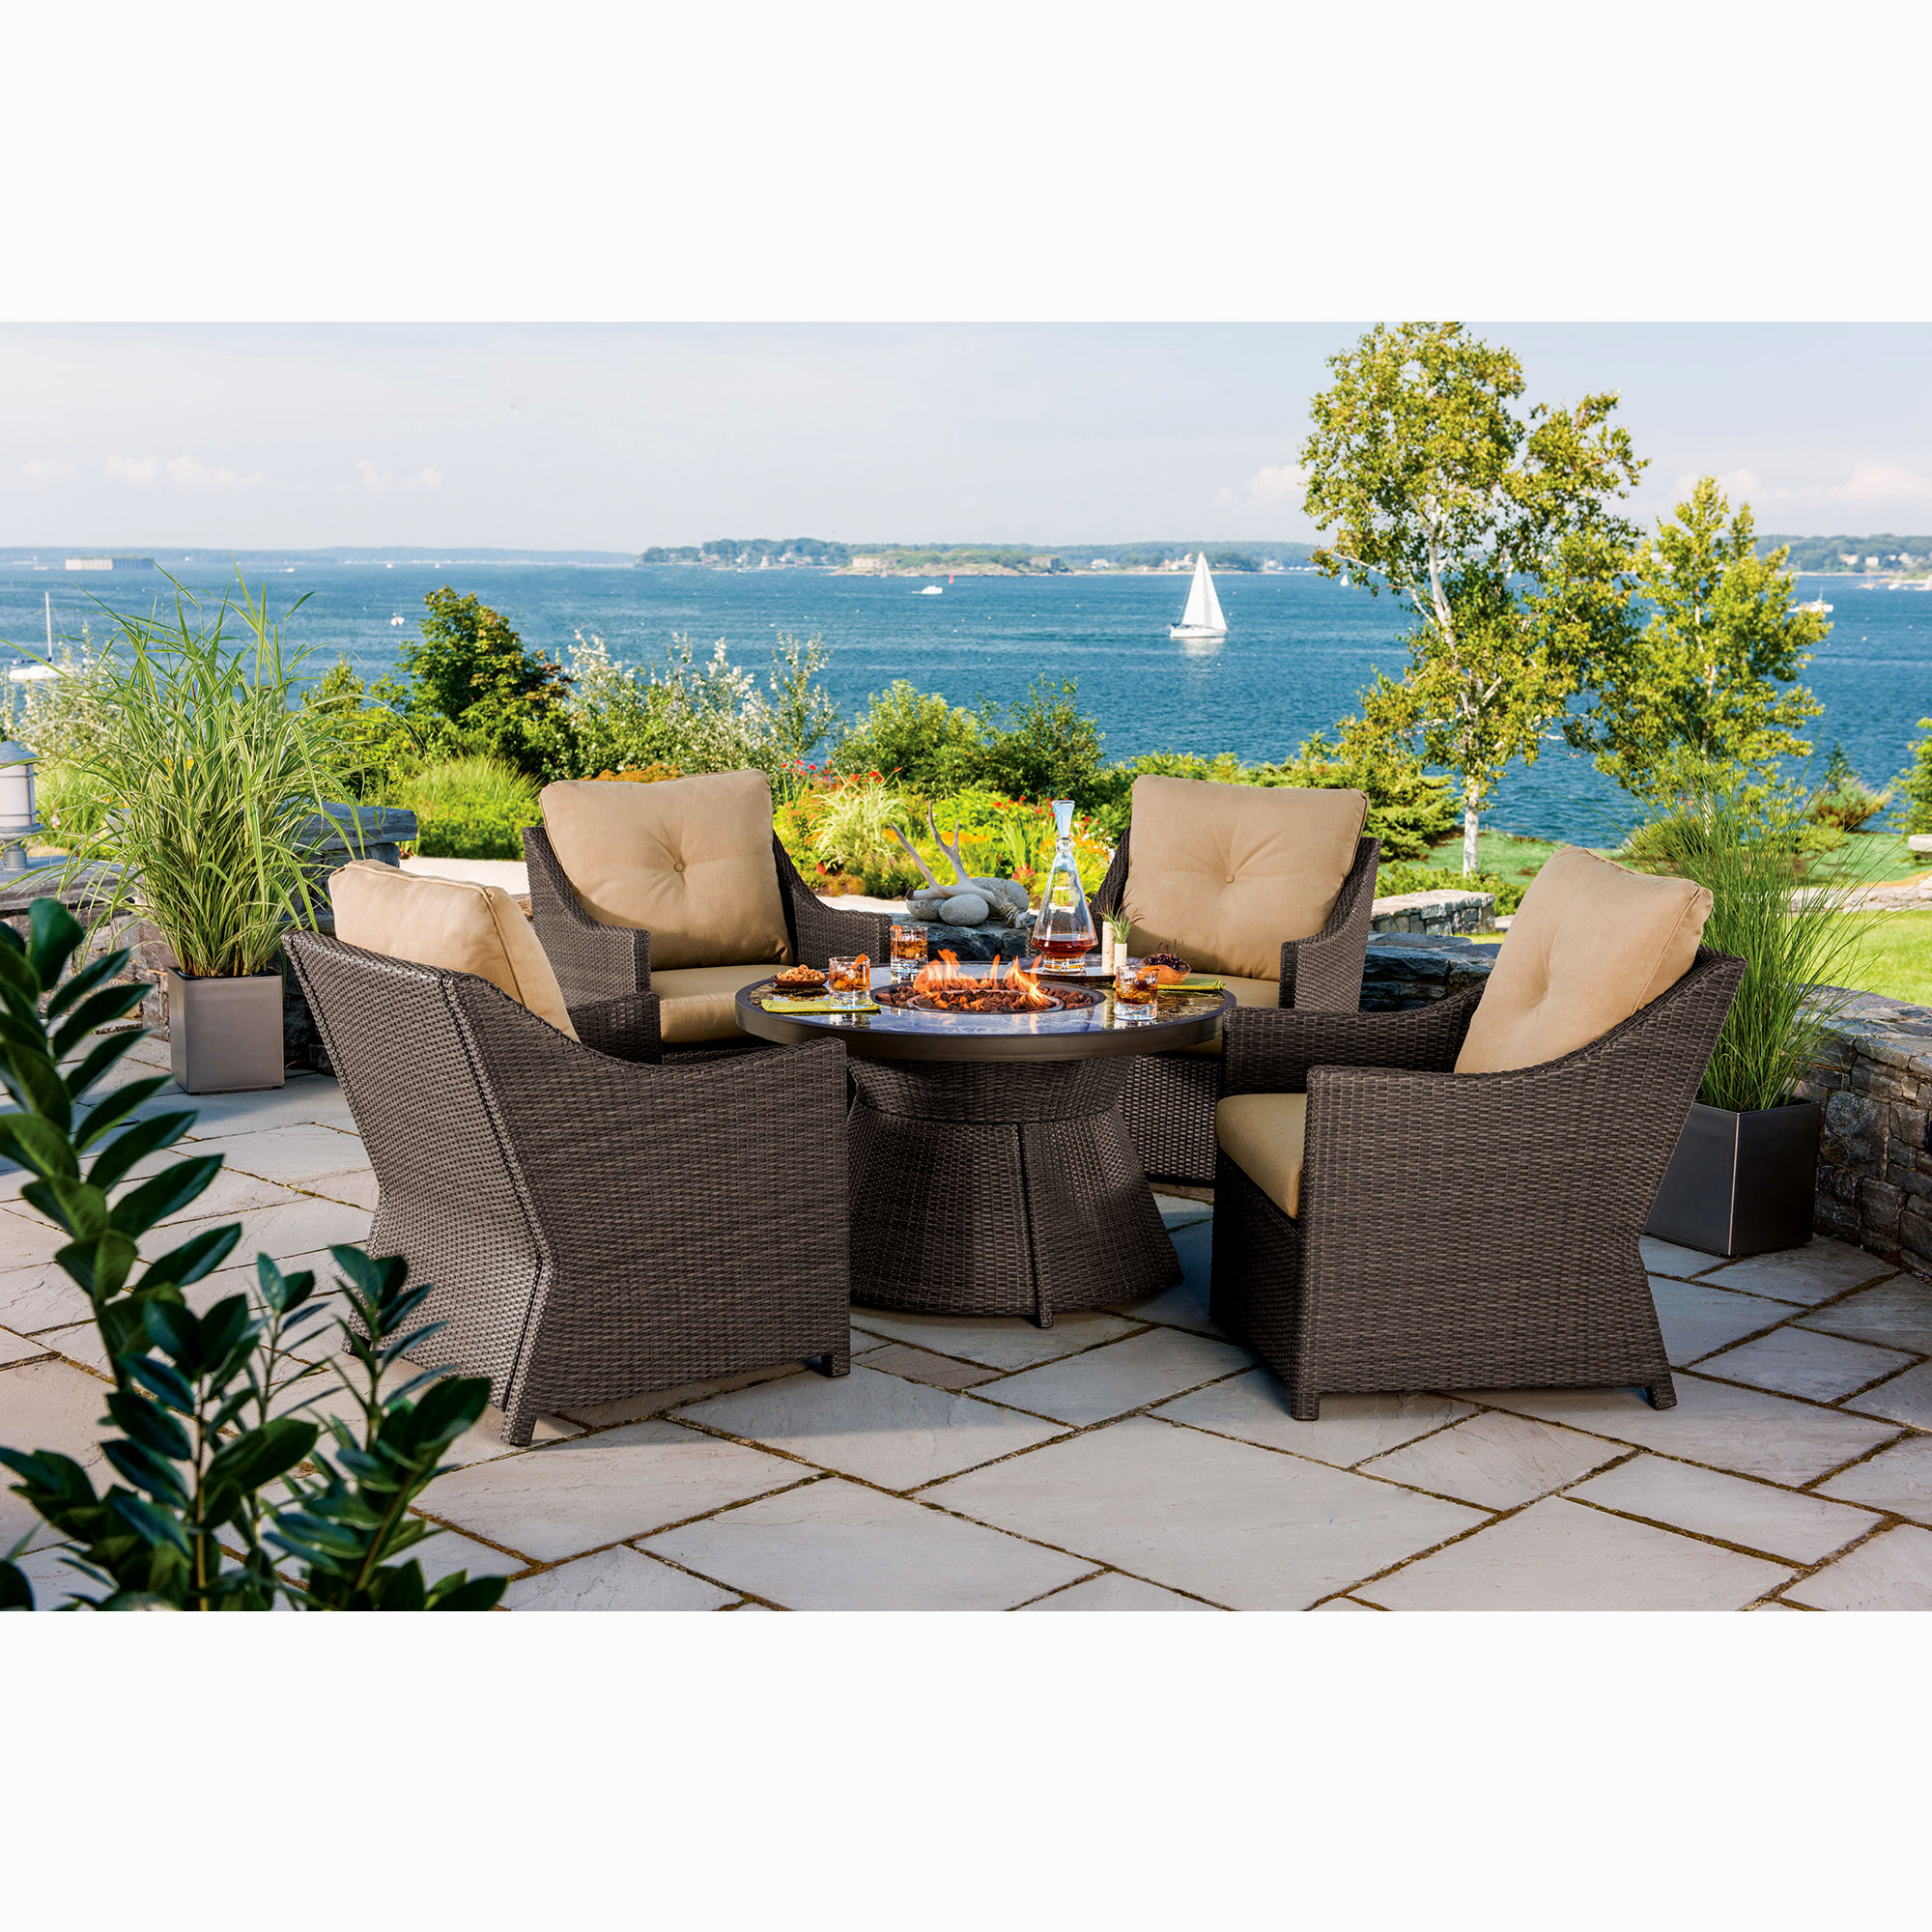 finest christopher knight home puerta grey outdoor wicker sofa set photo-Fancy Christopher Knight Home Puerta Grey Outdoor Wicker sofa Set Plan